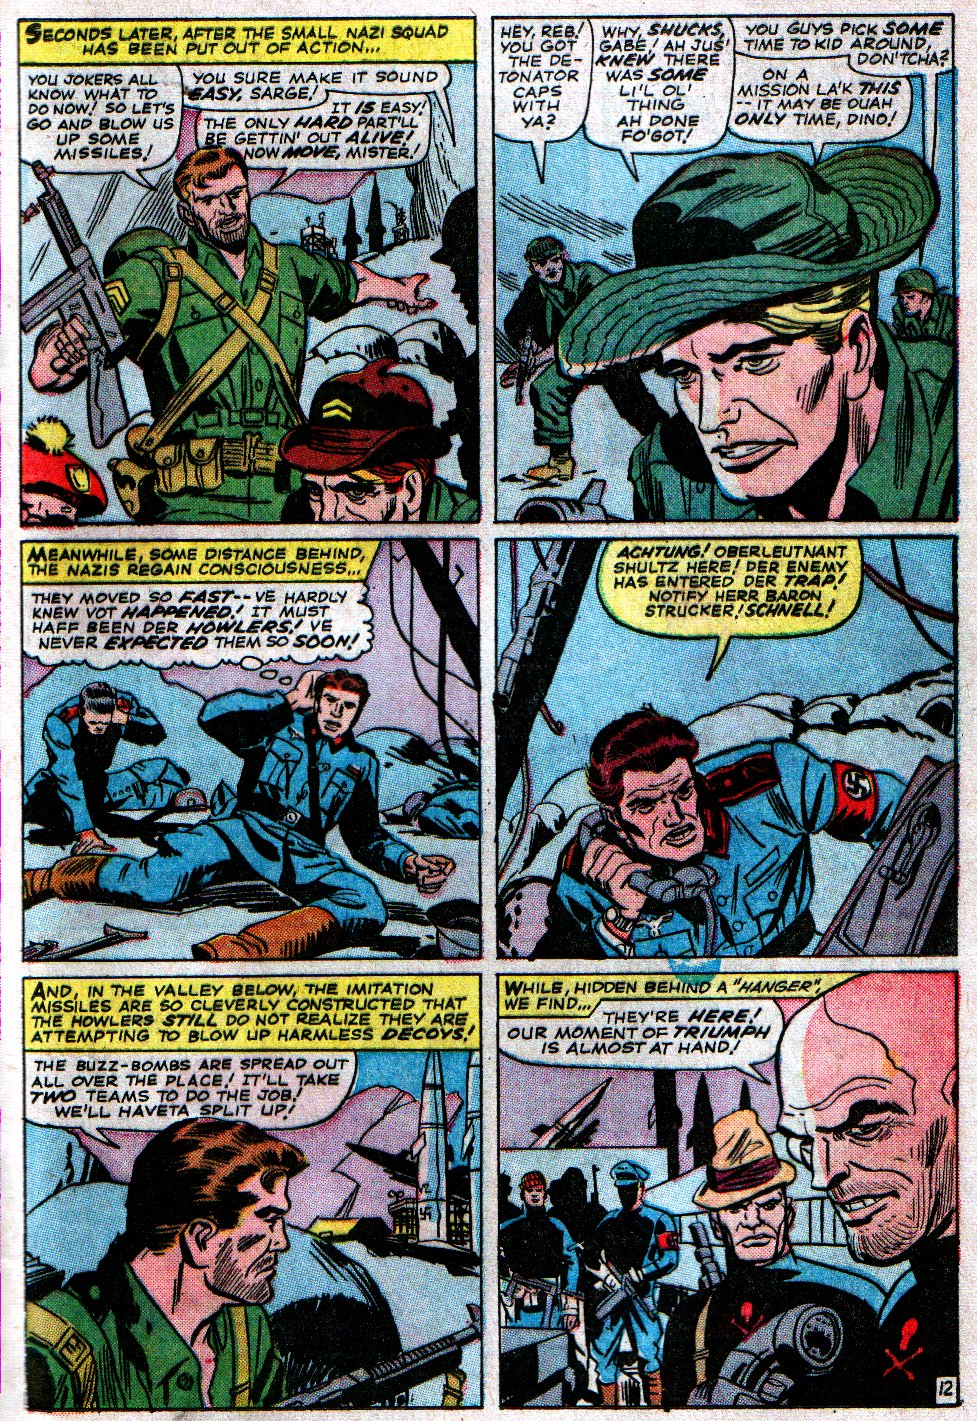 Read online Sgt. Fury comic -  Issue #14 - 17